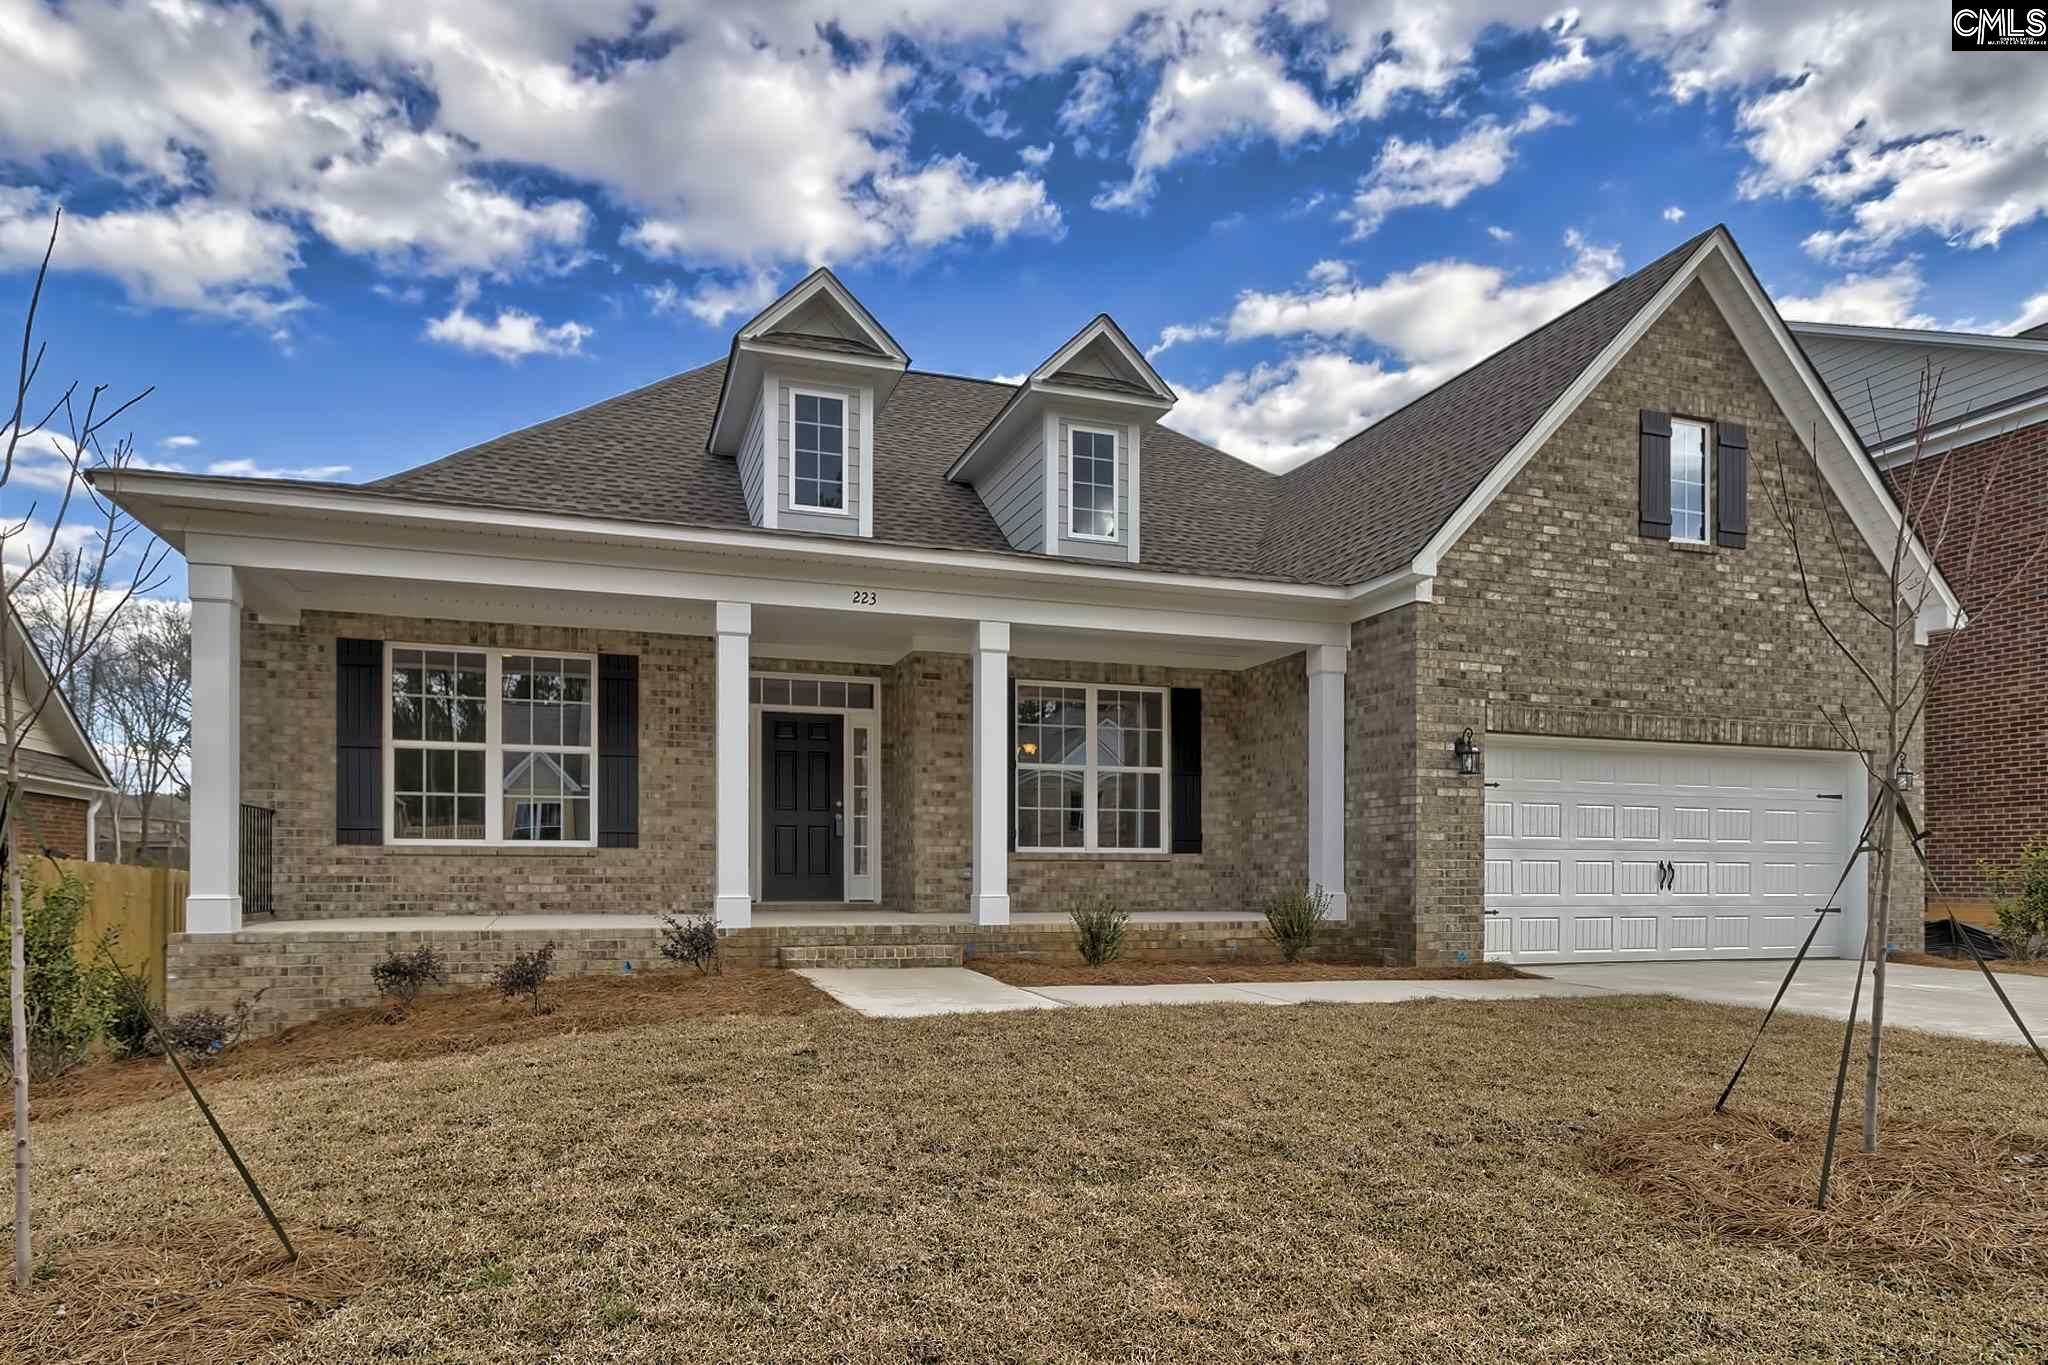 223 Cedar Hollow Irmo, SC 29063